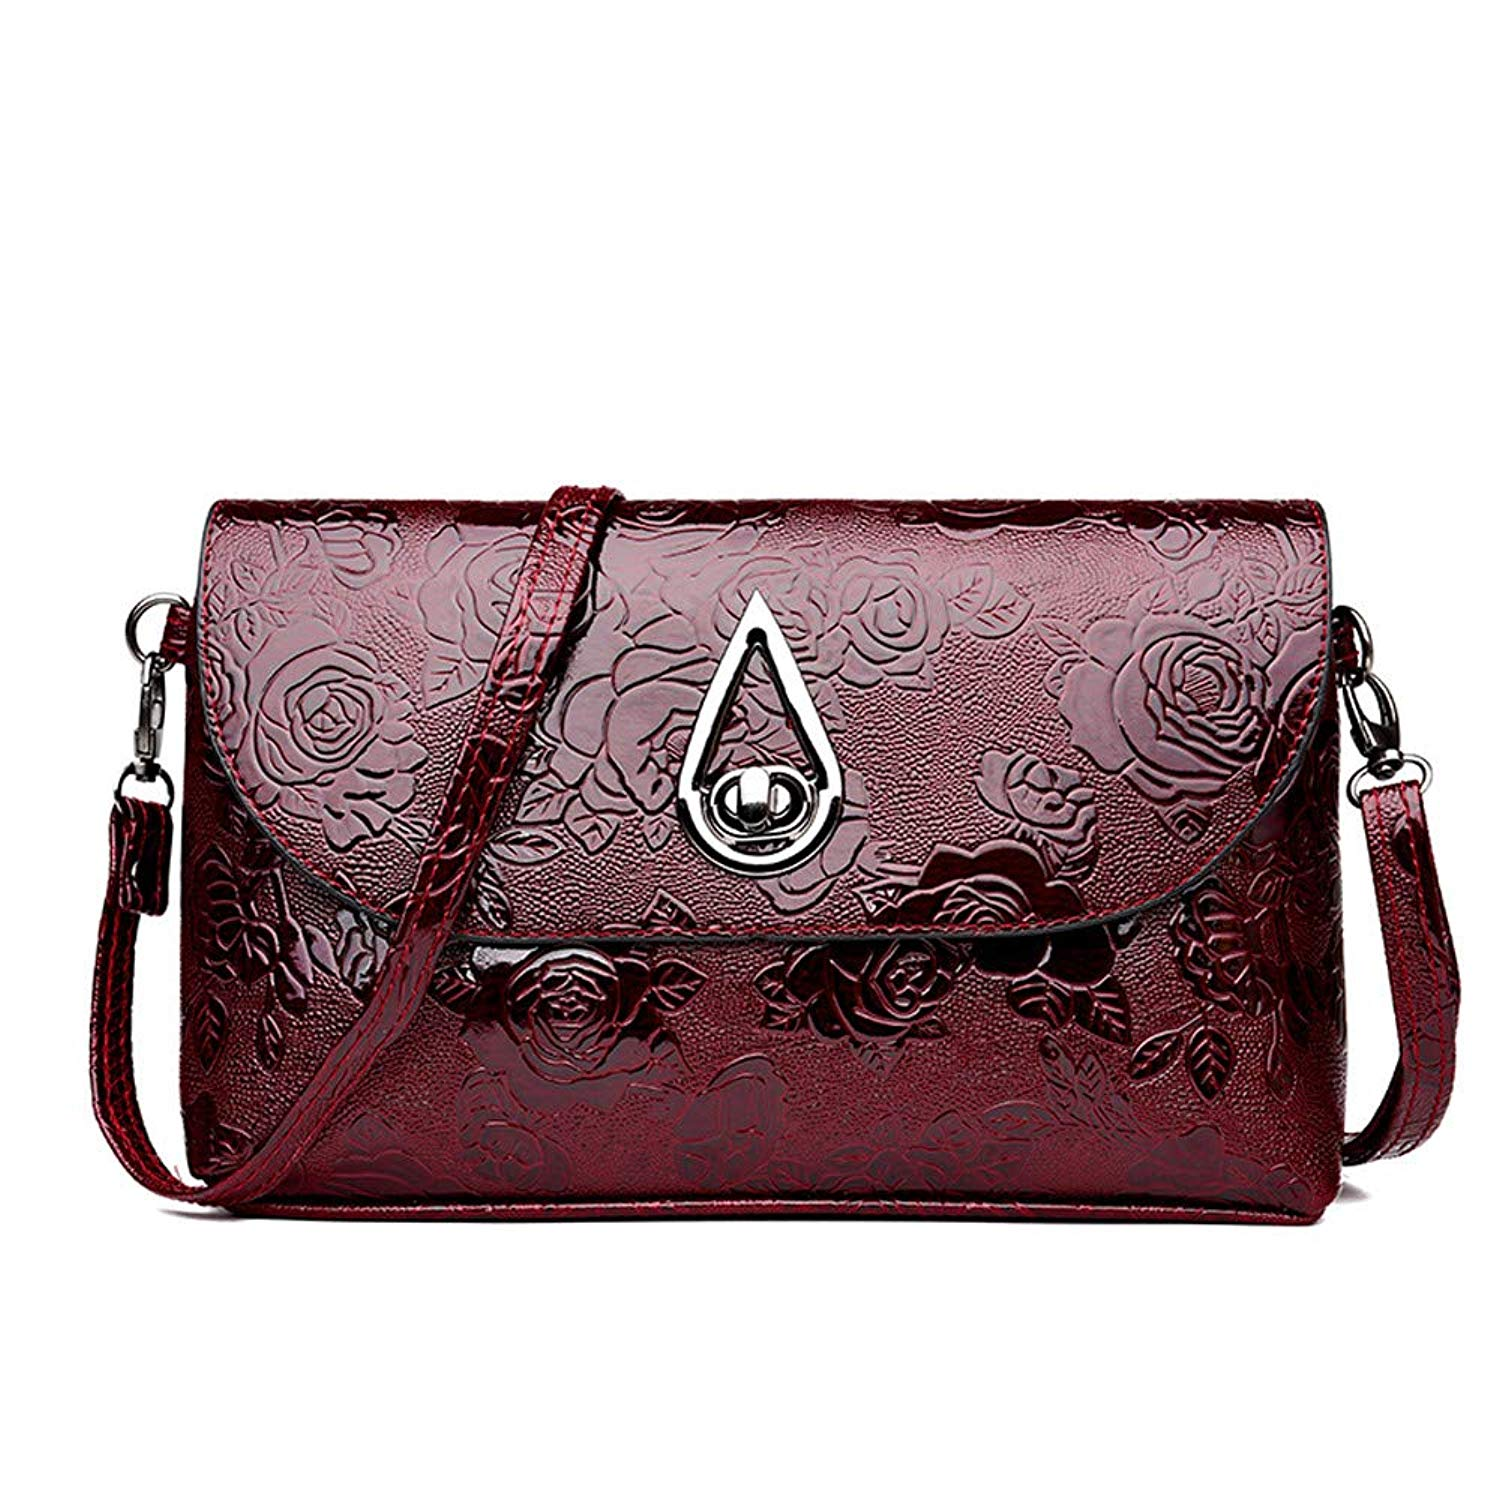 Fashion! Vintage Bags,Women Leather Crossbody Bag Flower Pattern Messenger Bag Retro Shoulder Bag